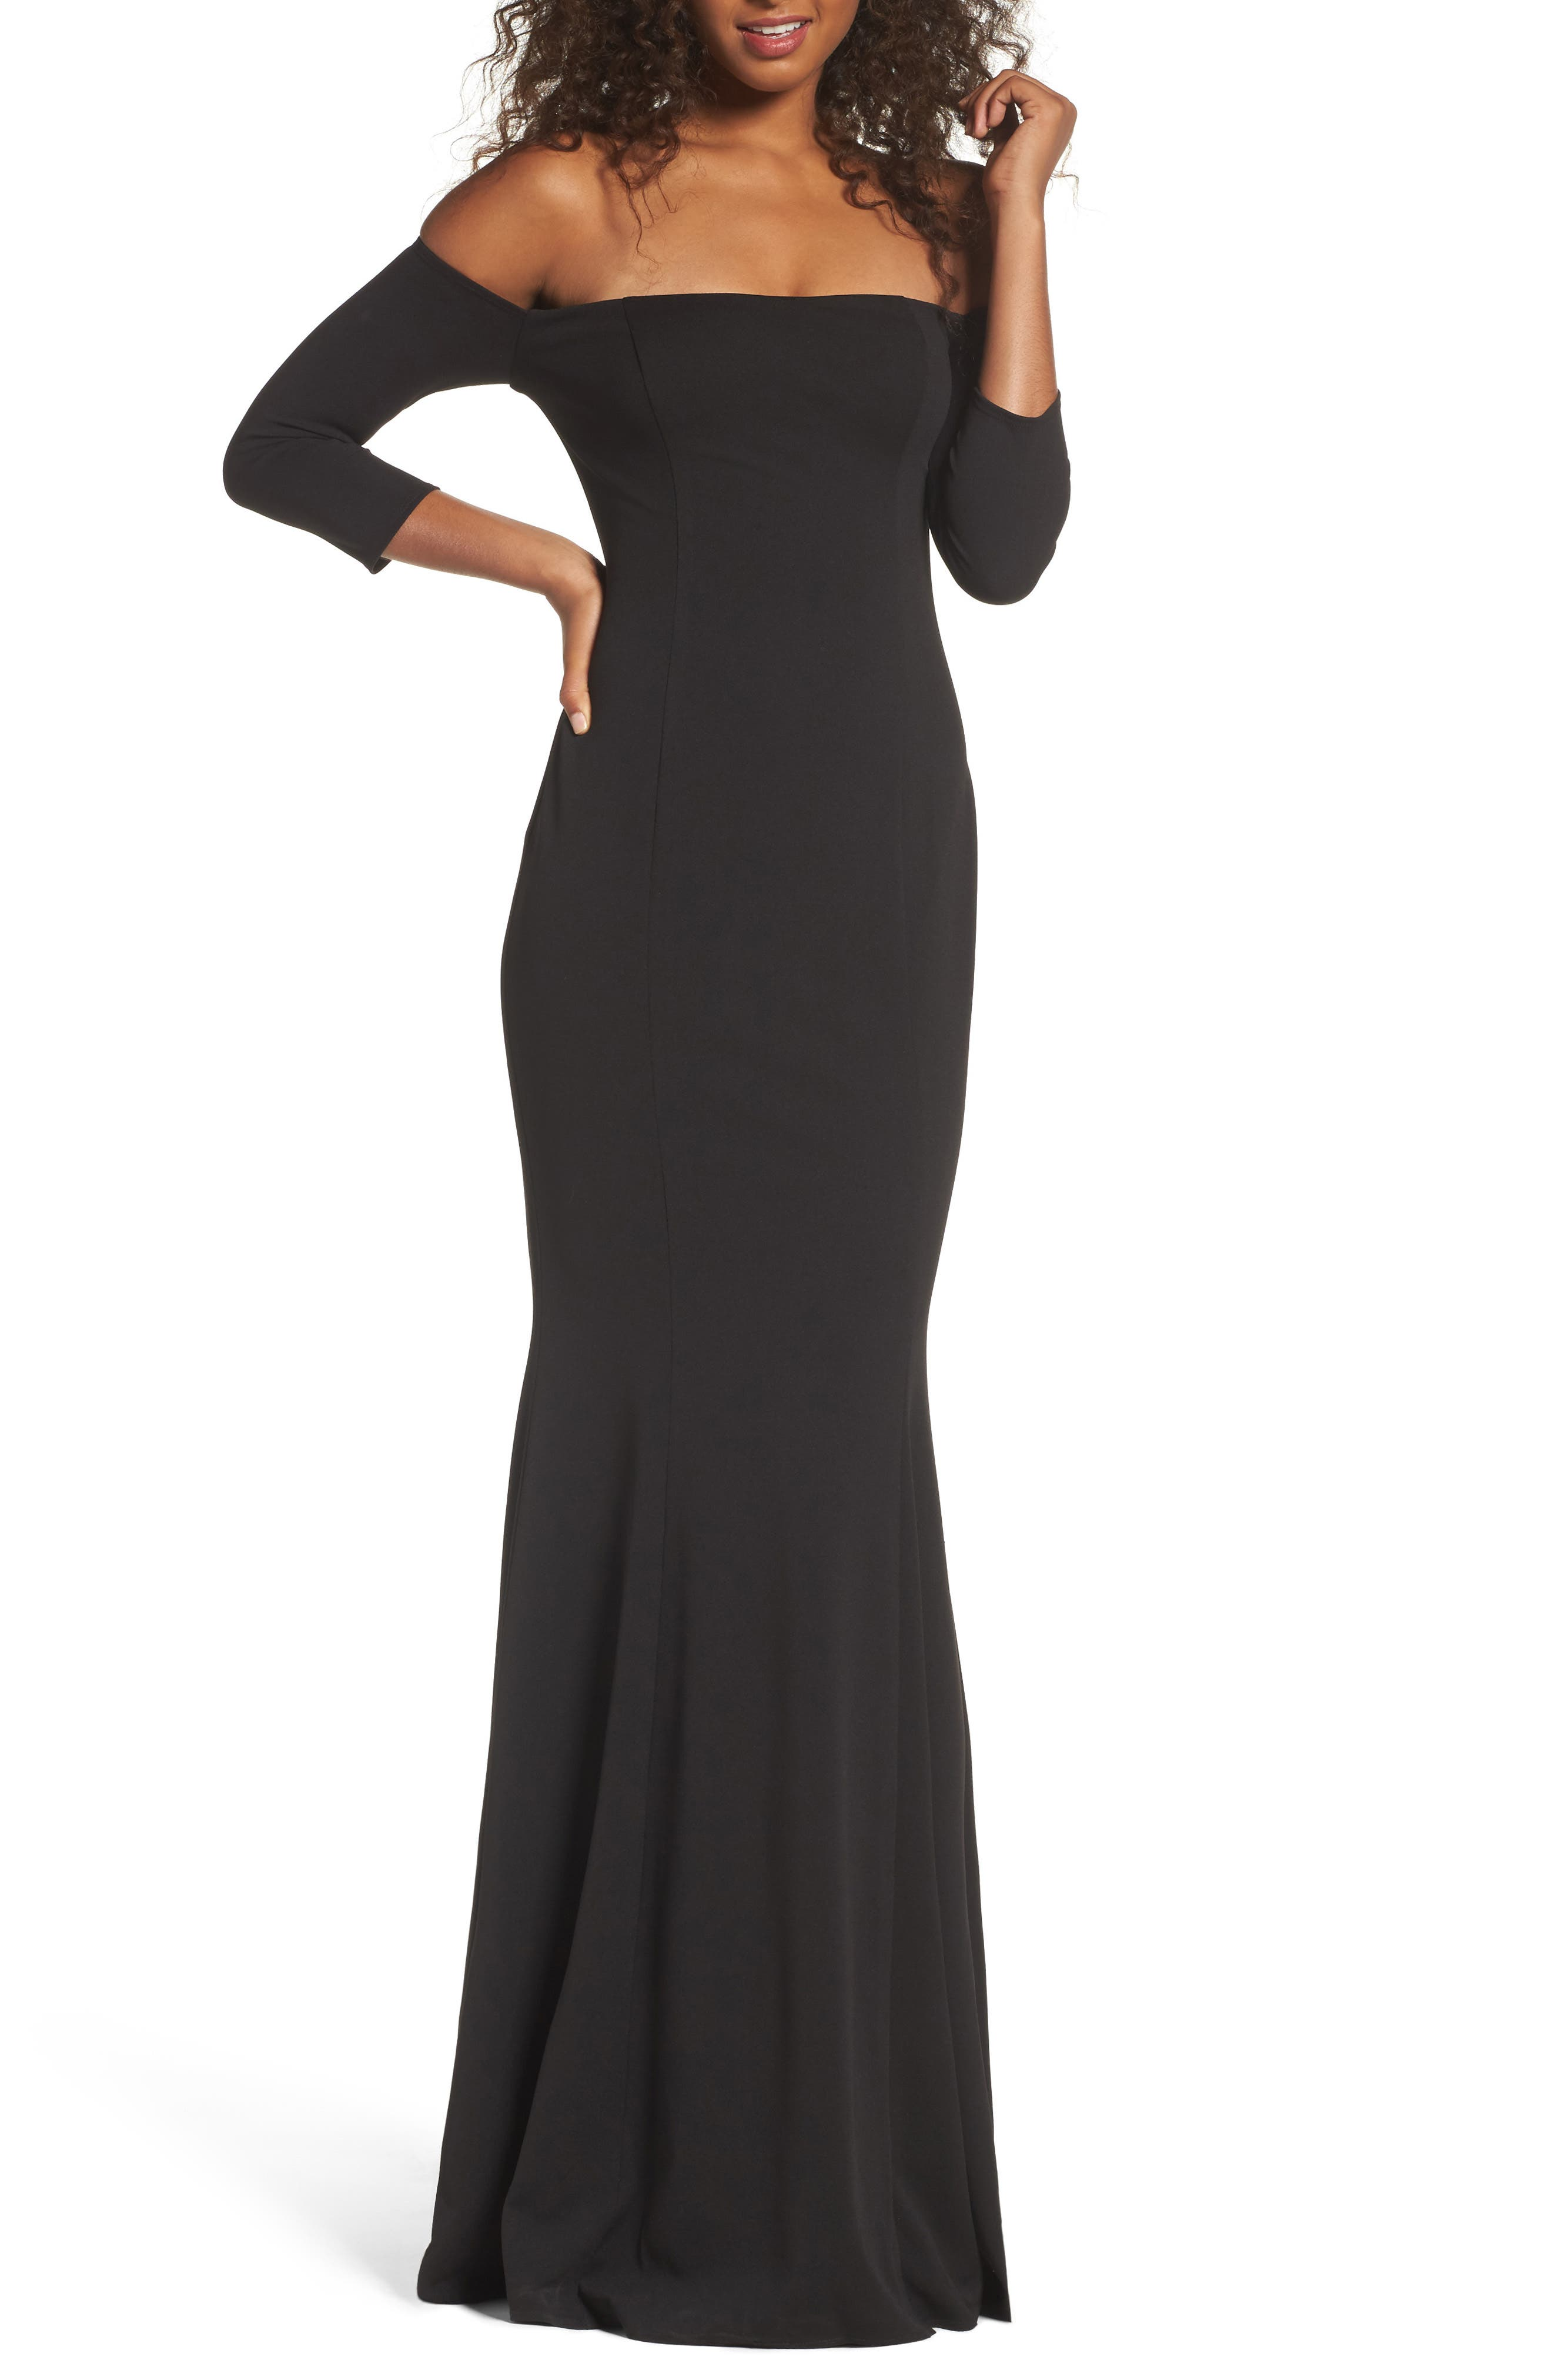 Brentwood Three-Quarter Sleeve Off the Shoulder Gown,                         Main,                         color, BLACK